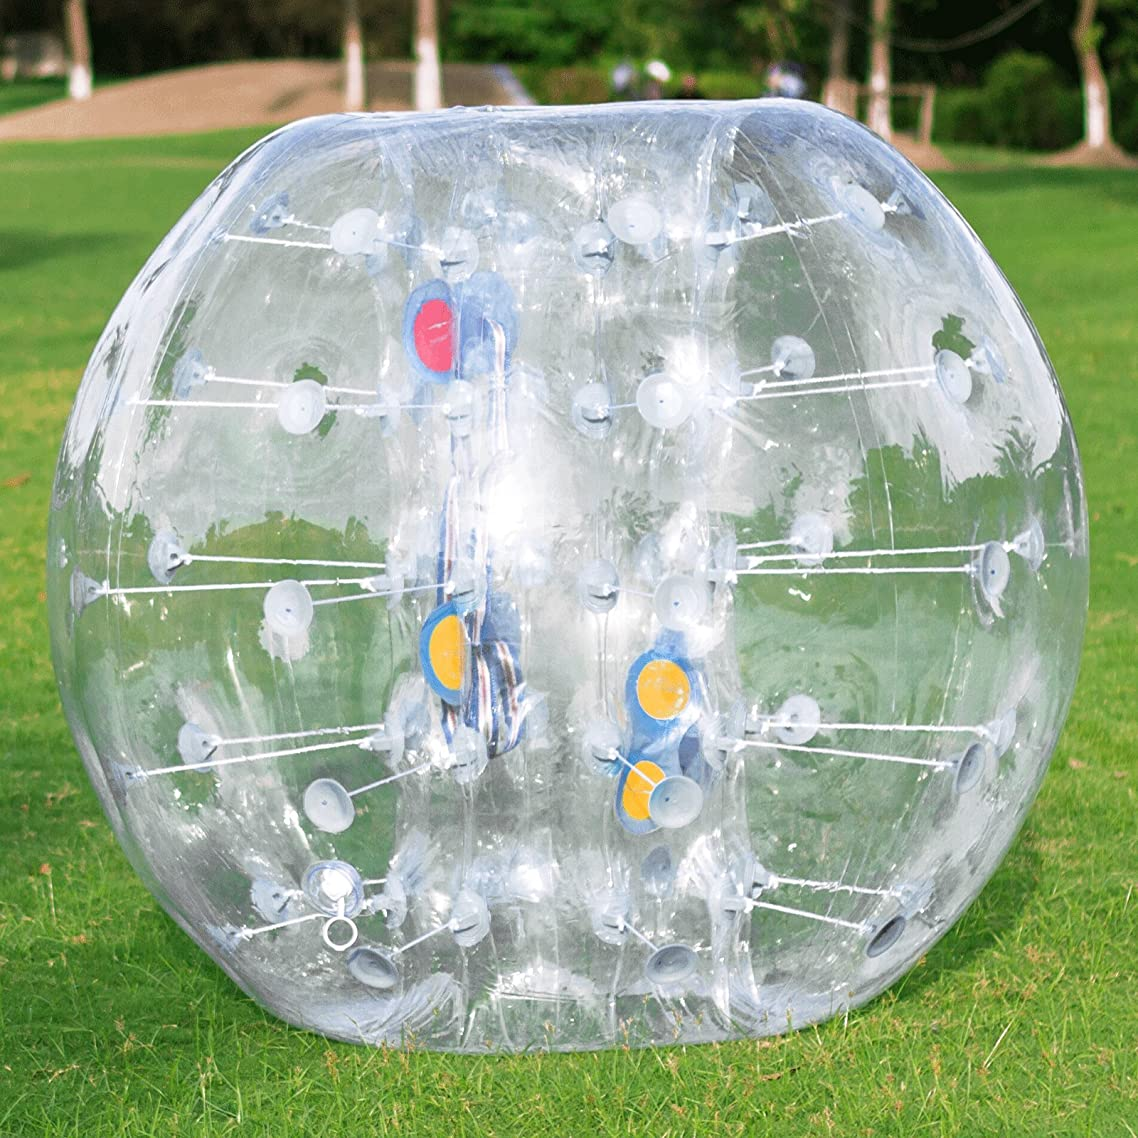 Happybuy Inflatable Bumper Ball 1.2M/4ft 1.5M/5ft Diameter Bubble Soccer Ball Blow Up Toy in 5 Min Inflatable Bumper Bubble Balls for Adults or Child